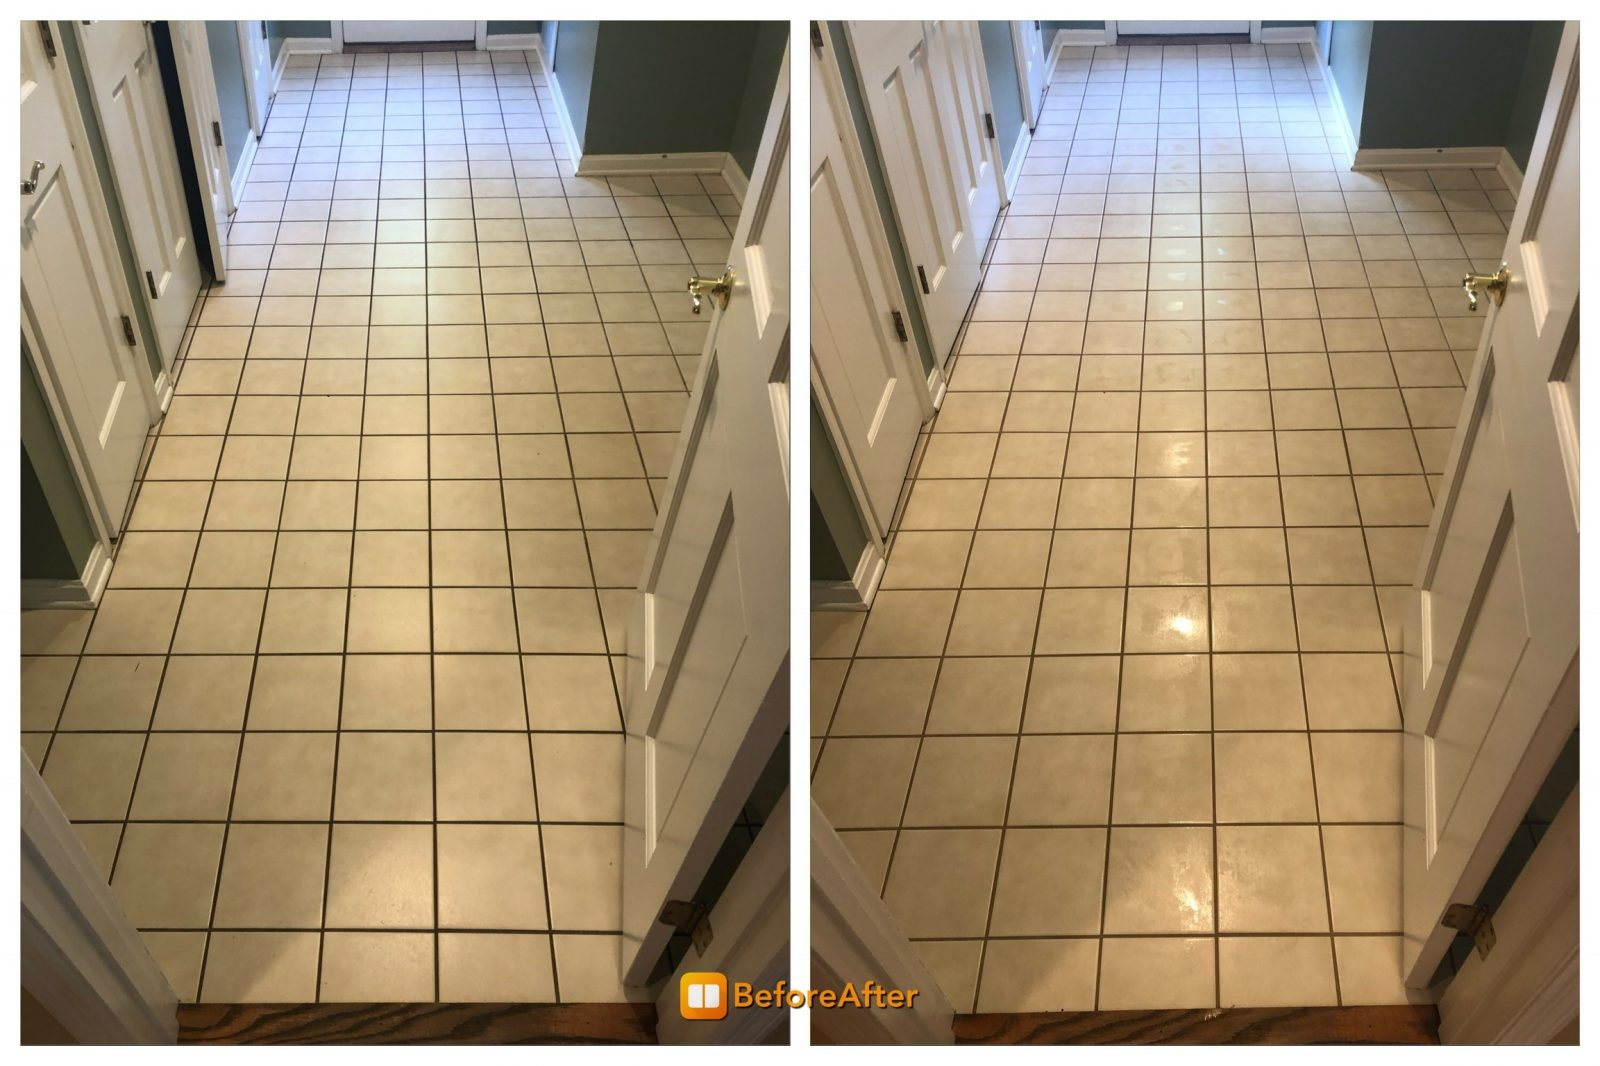 Professional Tile & Grout Cleaning Anderson Ohio by Howards Cleaning Service